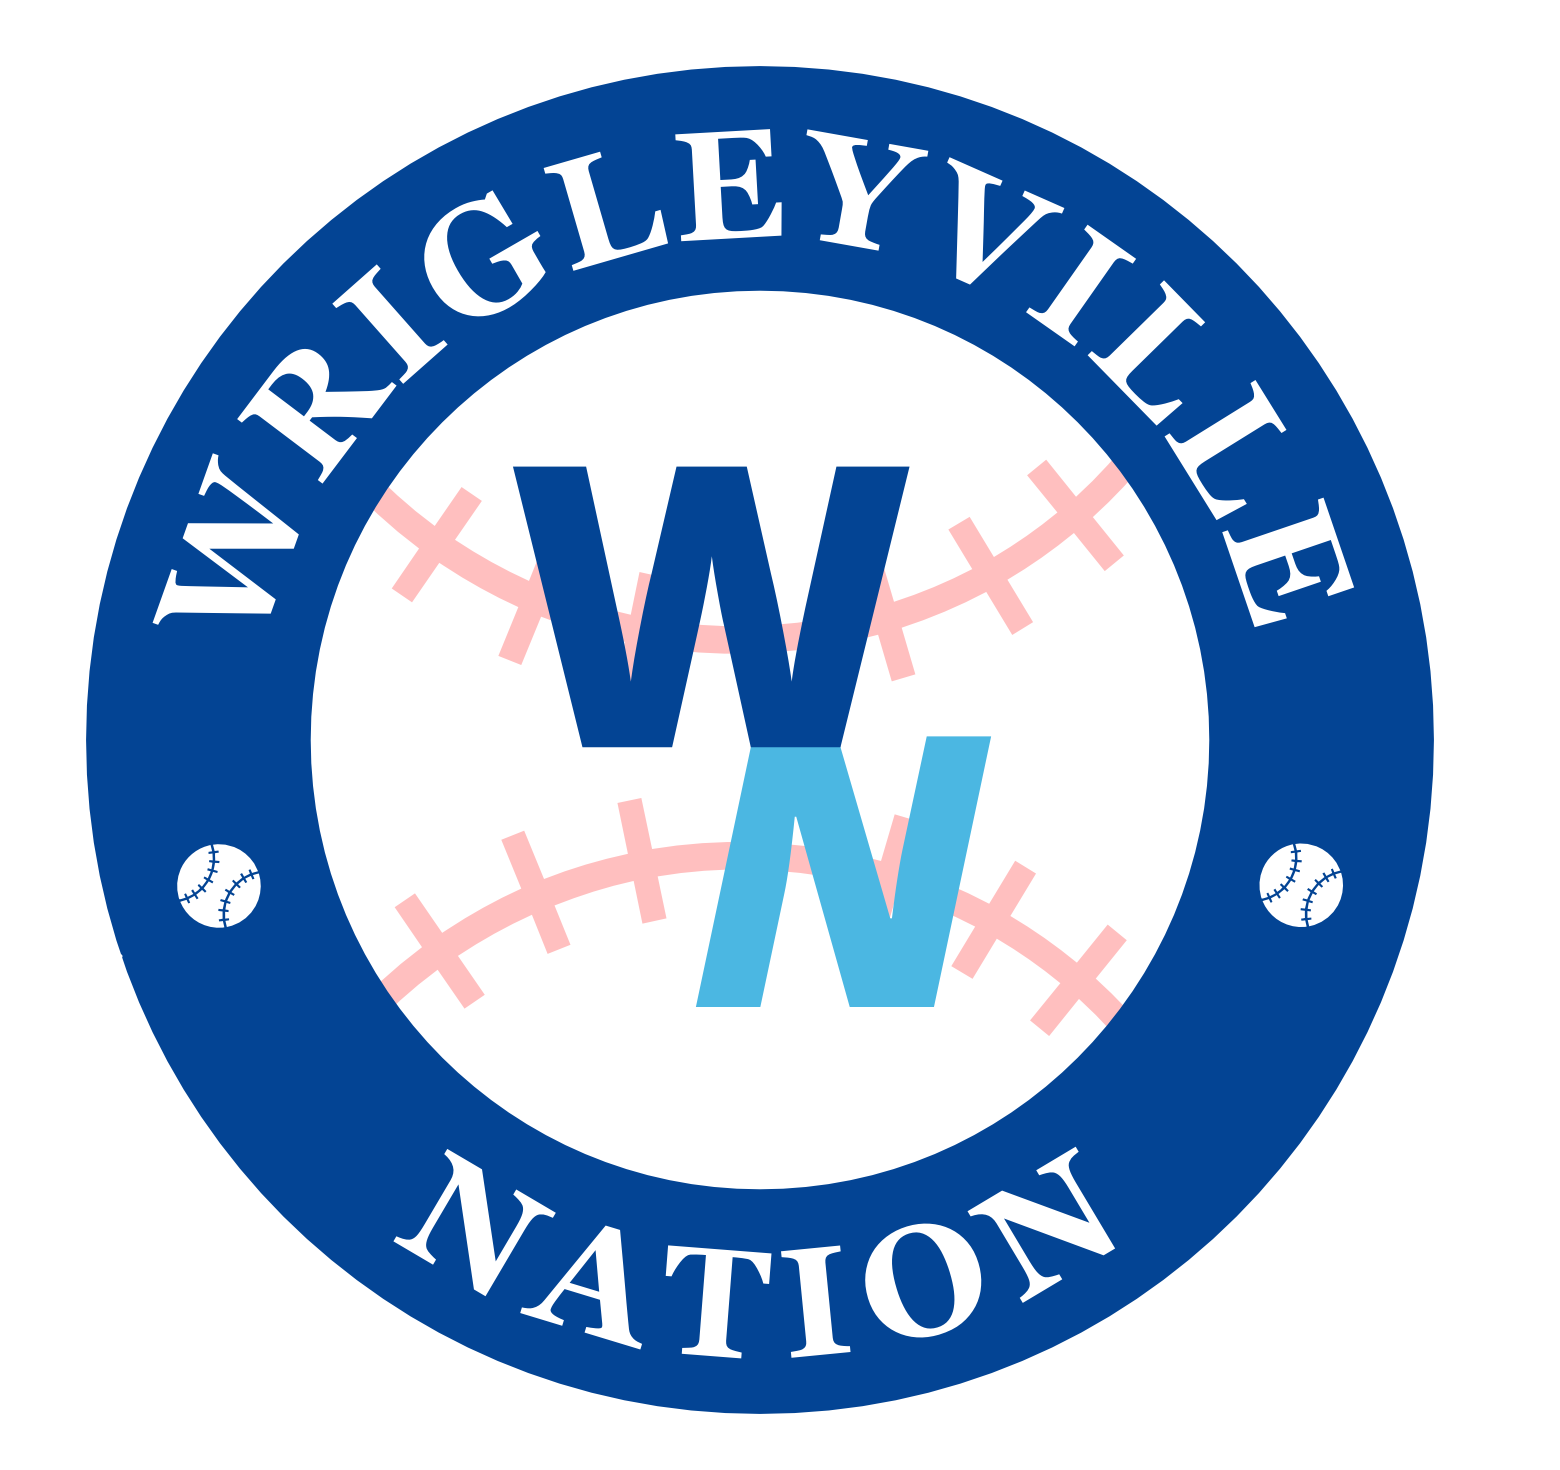 Wrigleyville Nation Ep 232 - Hosts Only, Cubs Cardinals Series Recap, Roster Updates, Sportsbook, & More show art